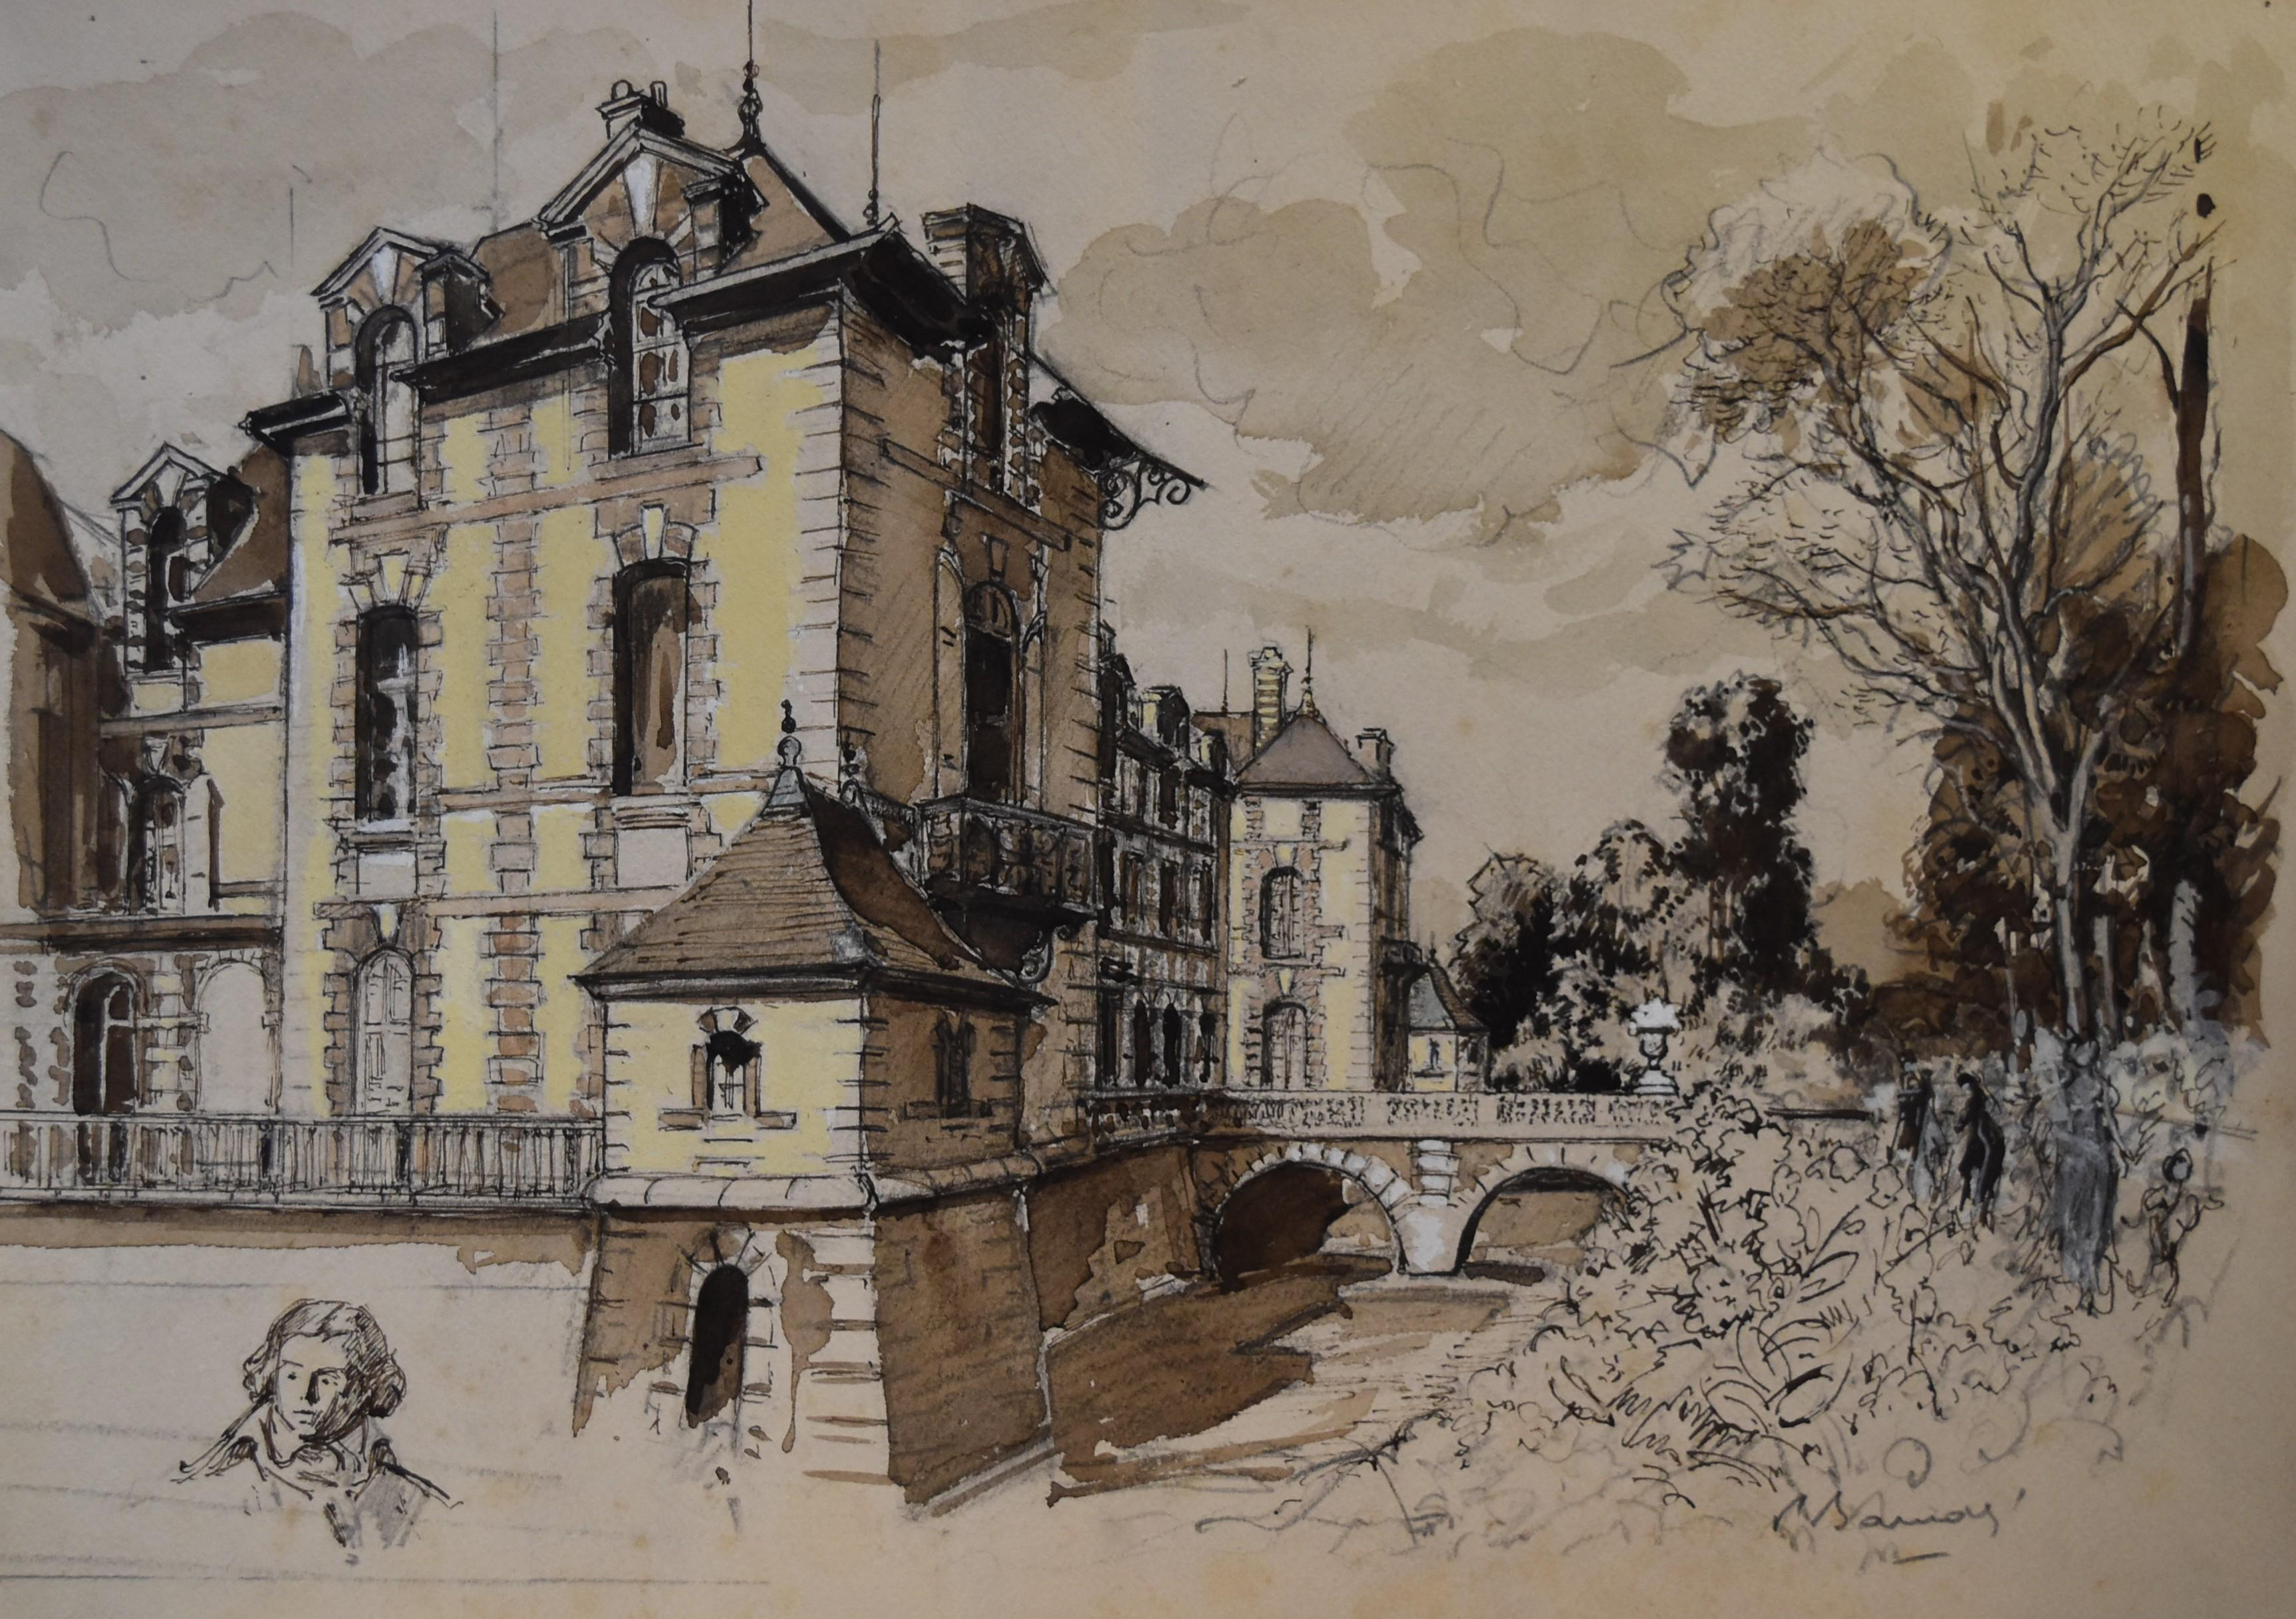 France early 20th century View of the Grosbois castle and head study, watercolor